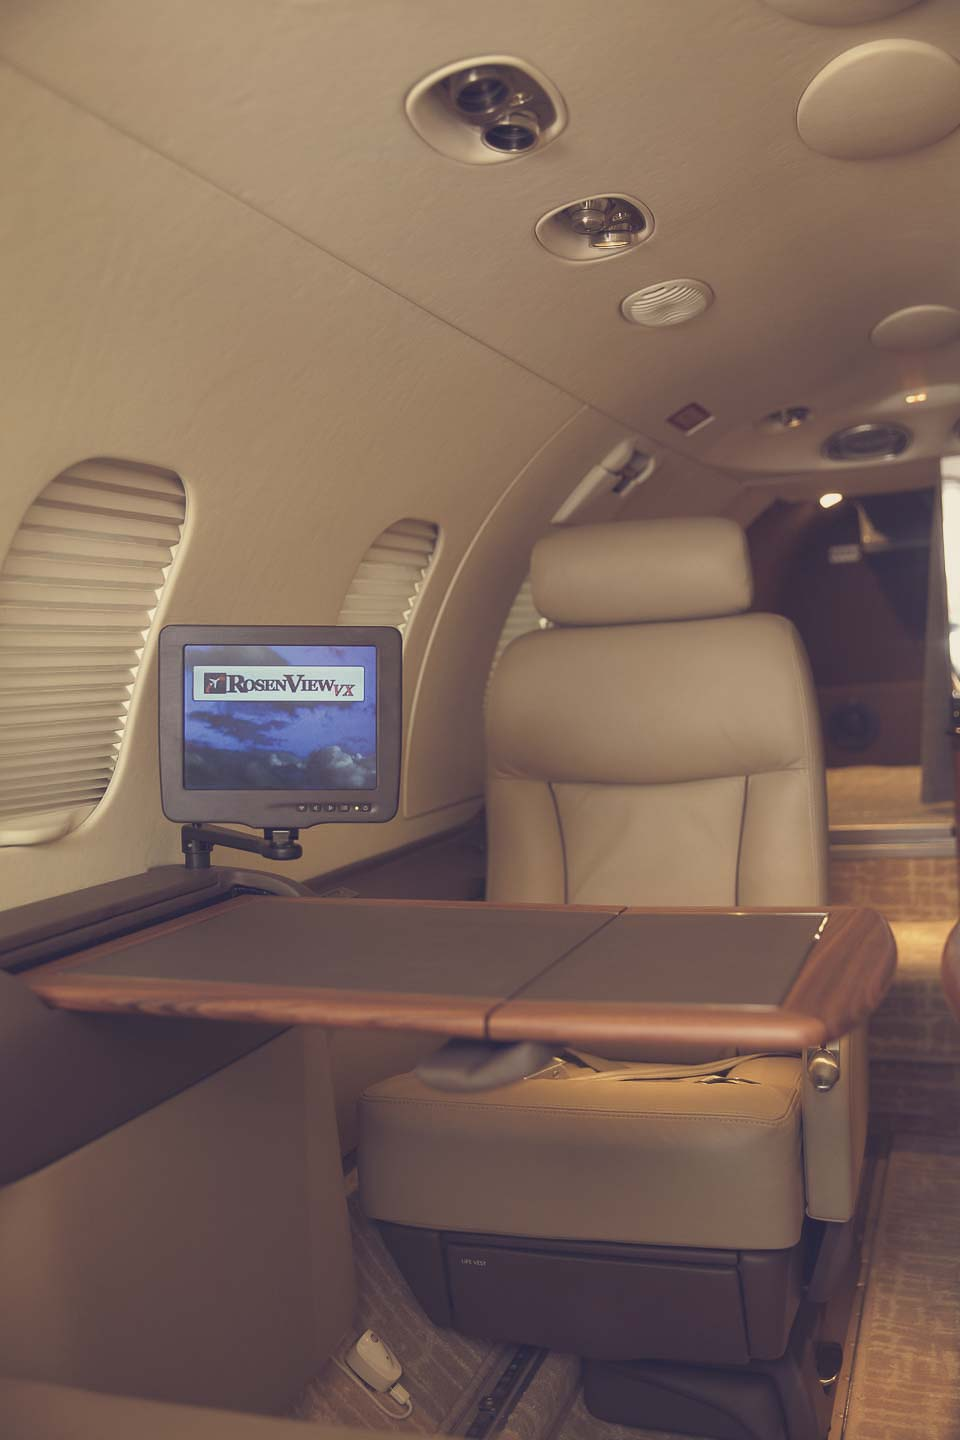 Learjet 31 table and monitor